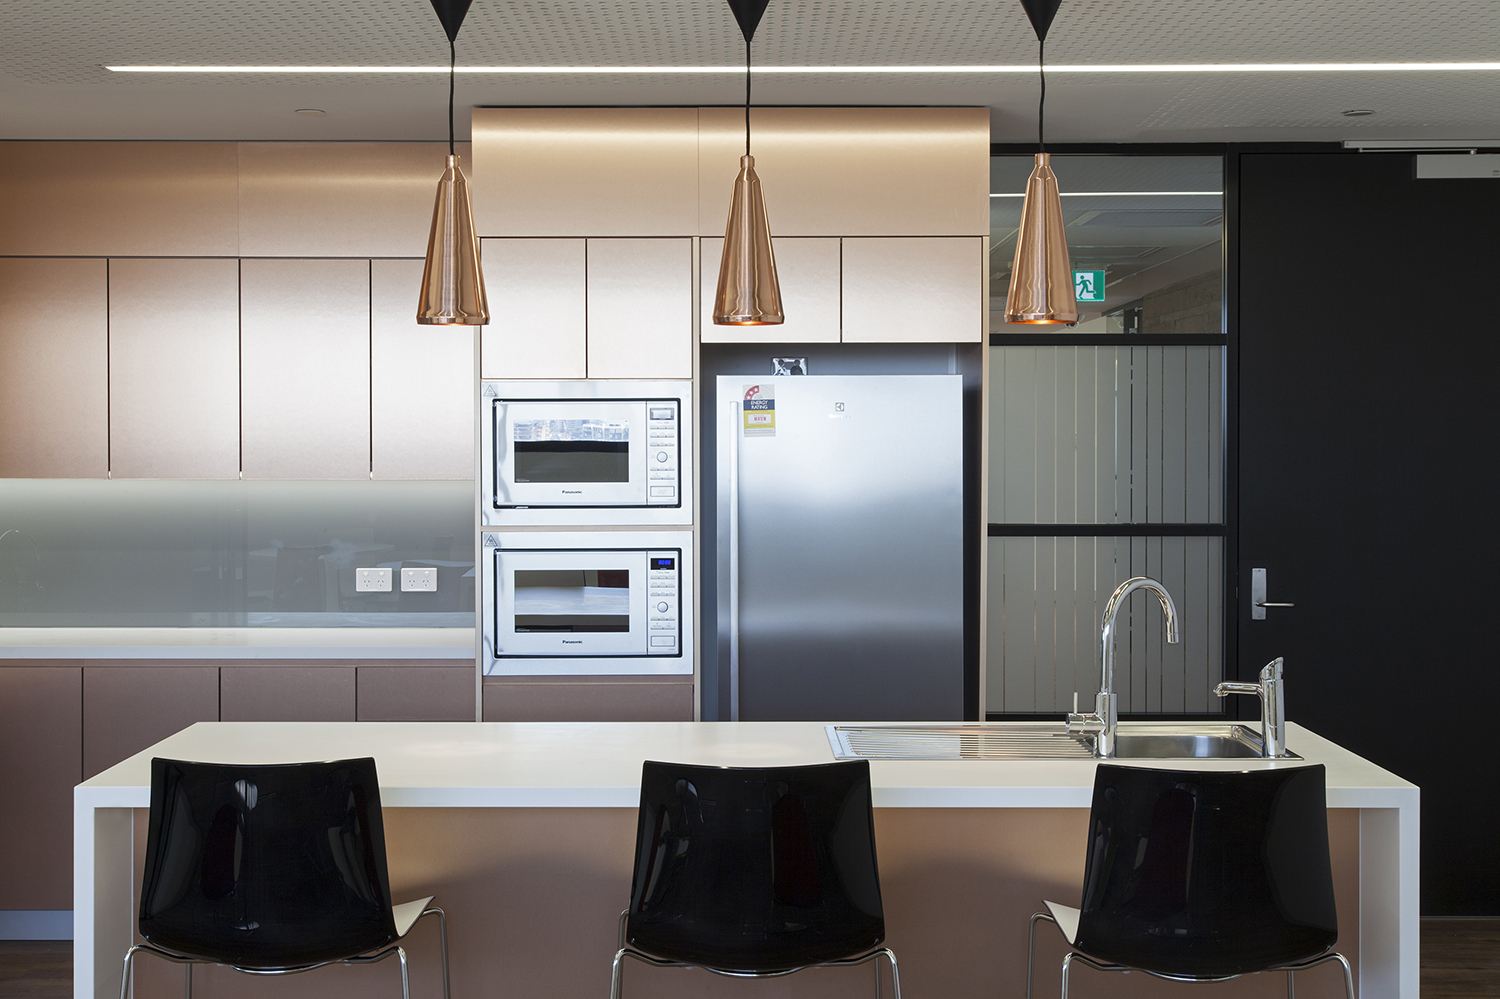 UTS Building 1 Levels 20 & 21 Office and Workplace Kitchen – Gardner Wetherill GW 3